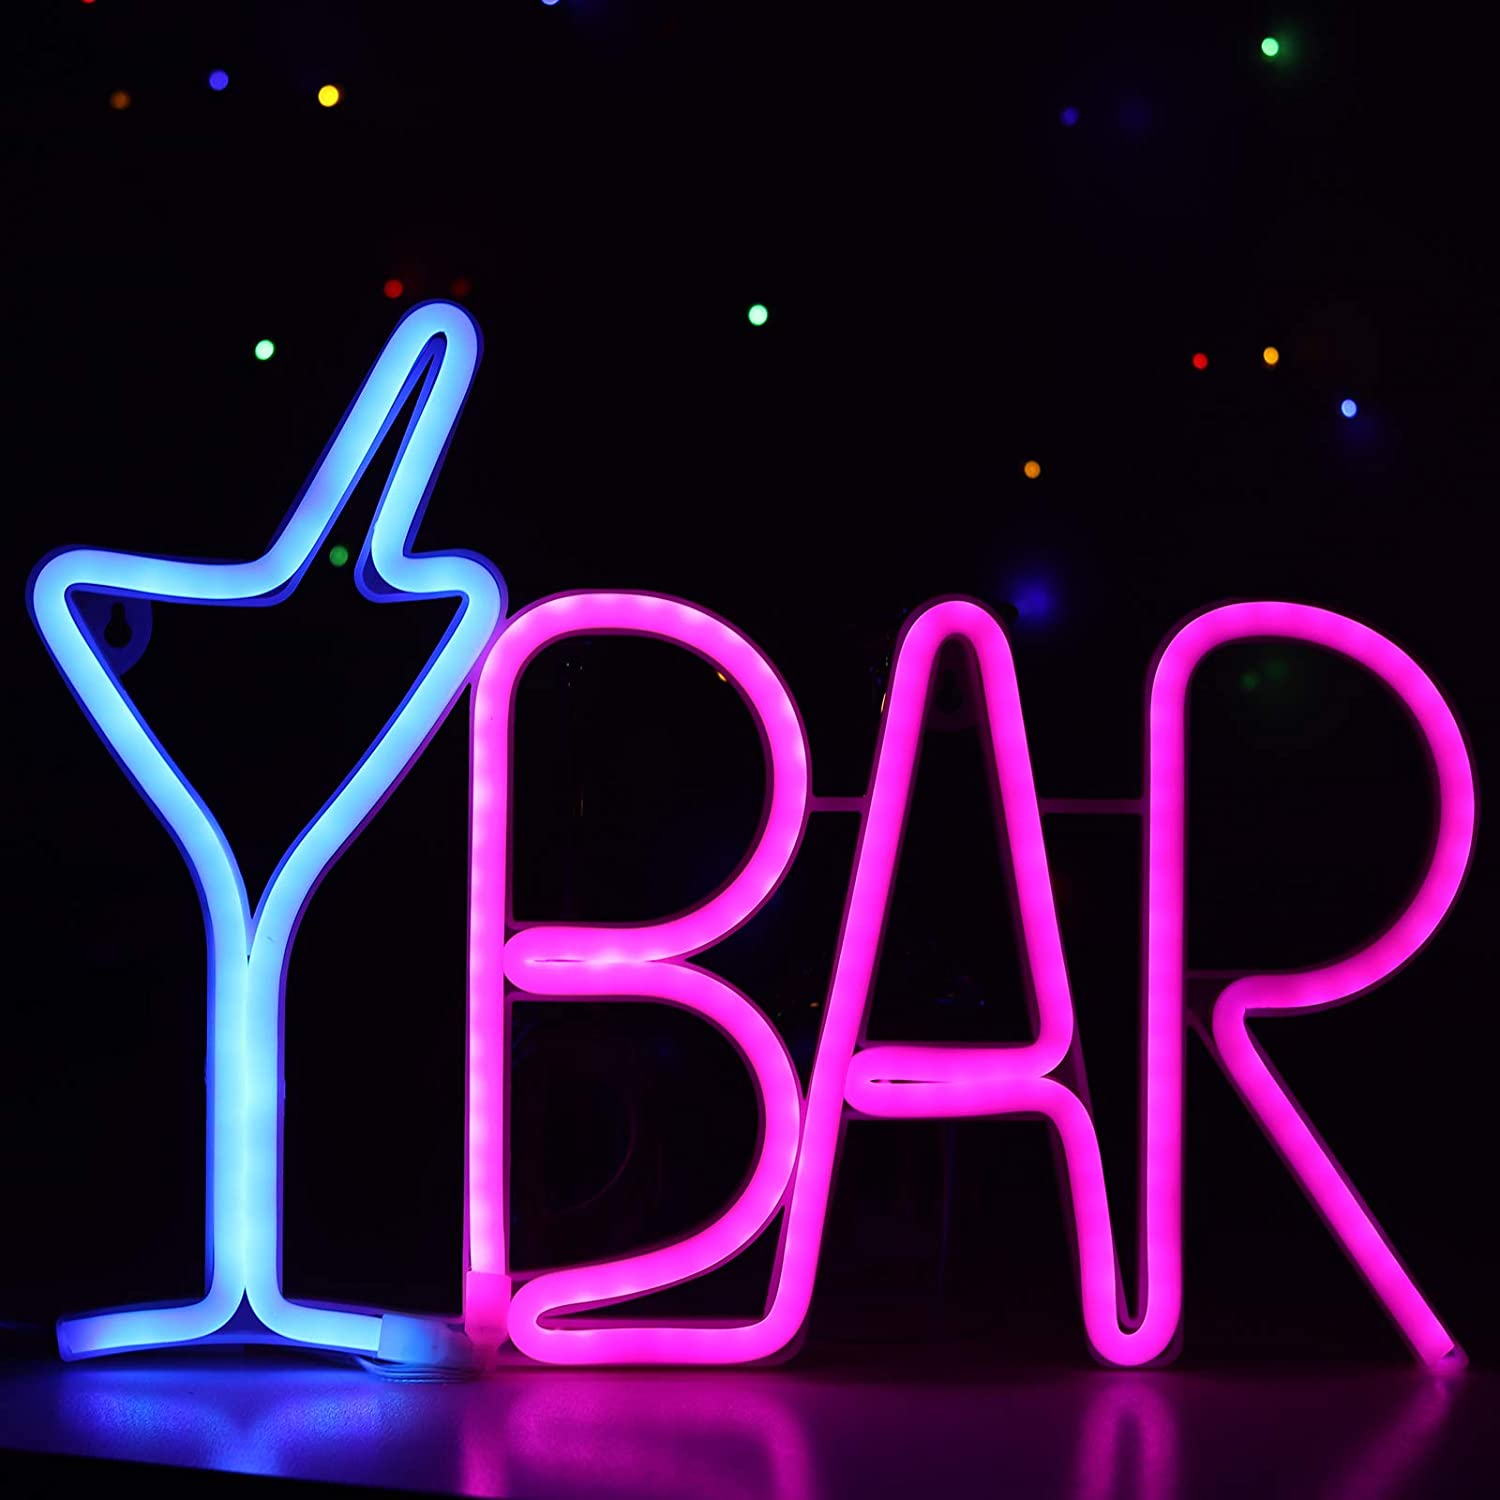 LED Bar Sign Neon Light USB Powered Blue Cocktail Glass & Pink BAR Light Up Letter Advertisement Board Electric Display Sign for Business Wall Art Décor for Pub, Bistro, Party,Man Cave,Lair(BARBP)